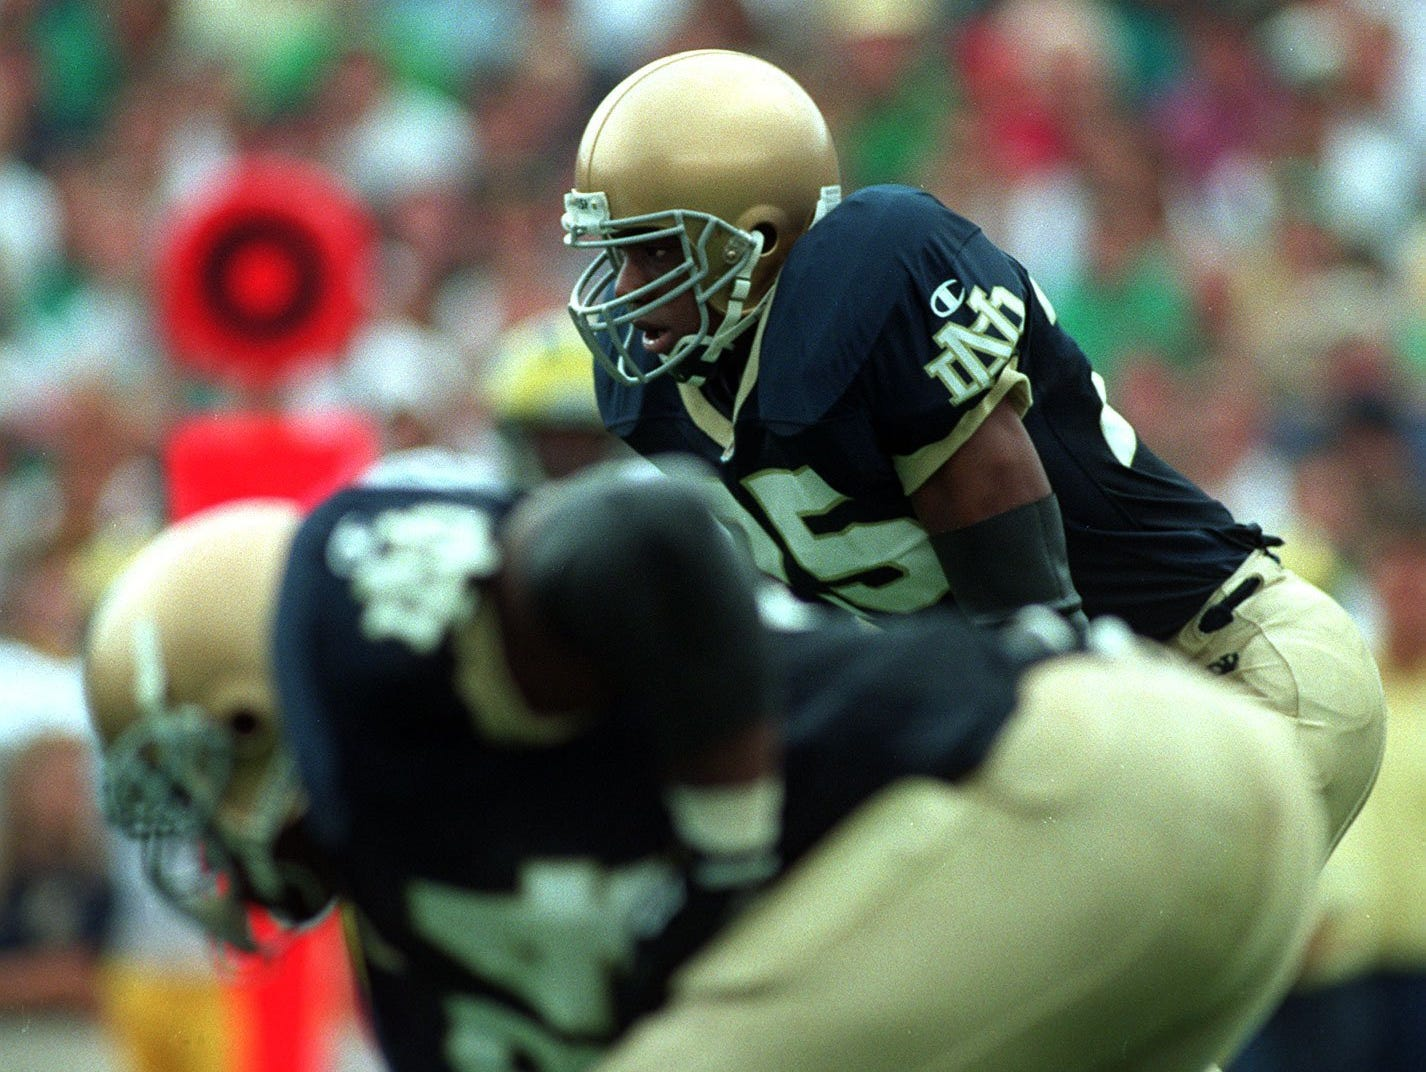 East Lansing's Randy Kinder rushed for 2,295 yards and averaged 5.7 yards per carry during his four seasons at Notre Dame from 1993-96.